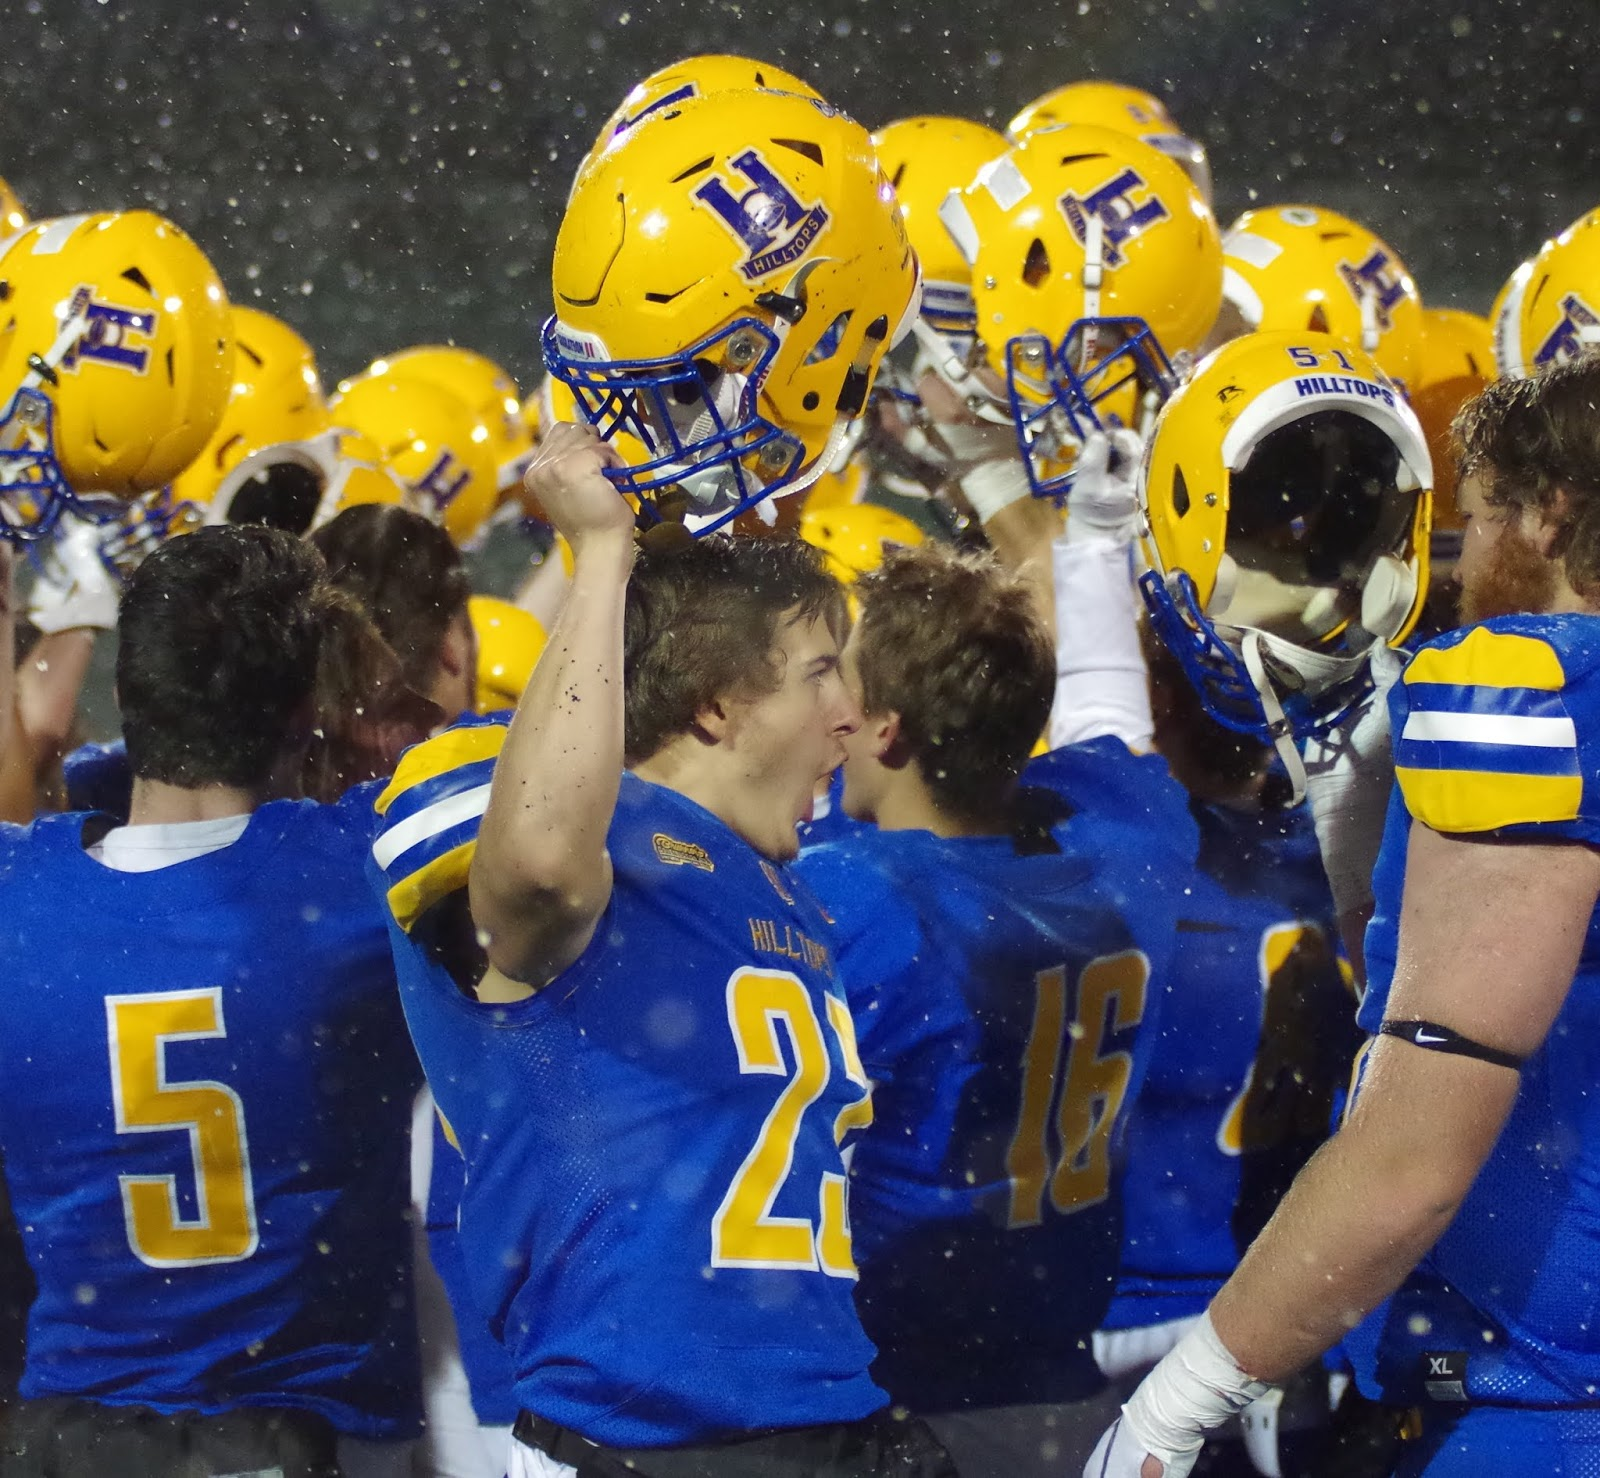 hilltops huskies to battle in first place showdown